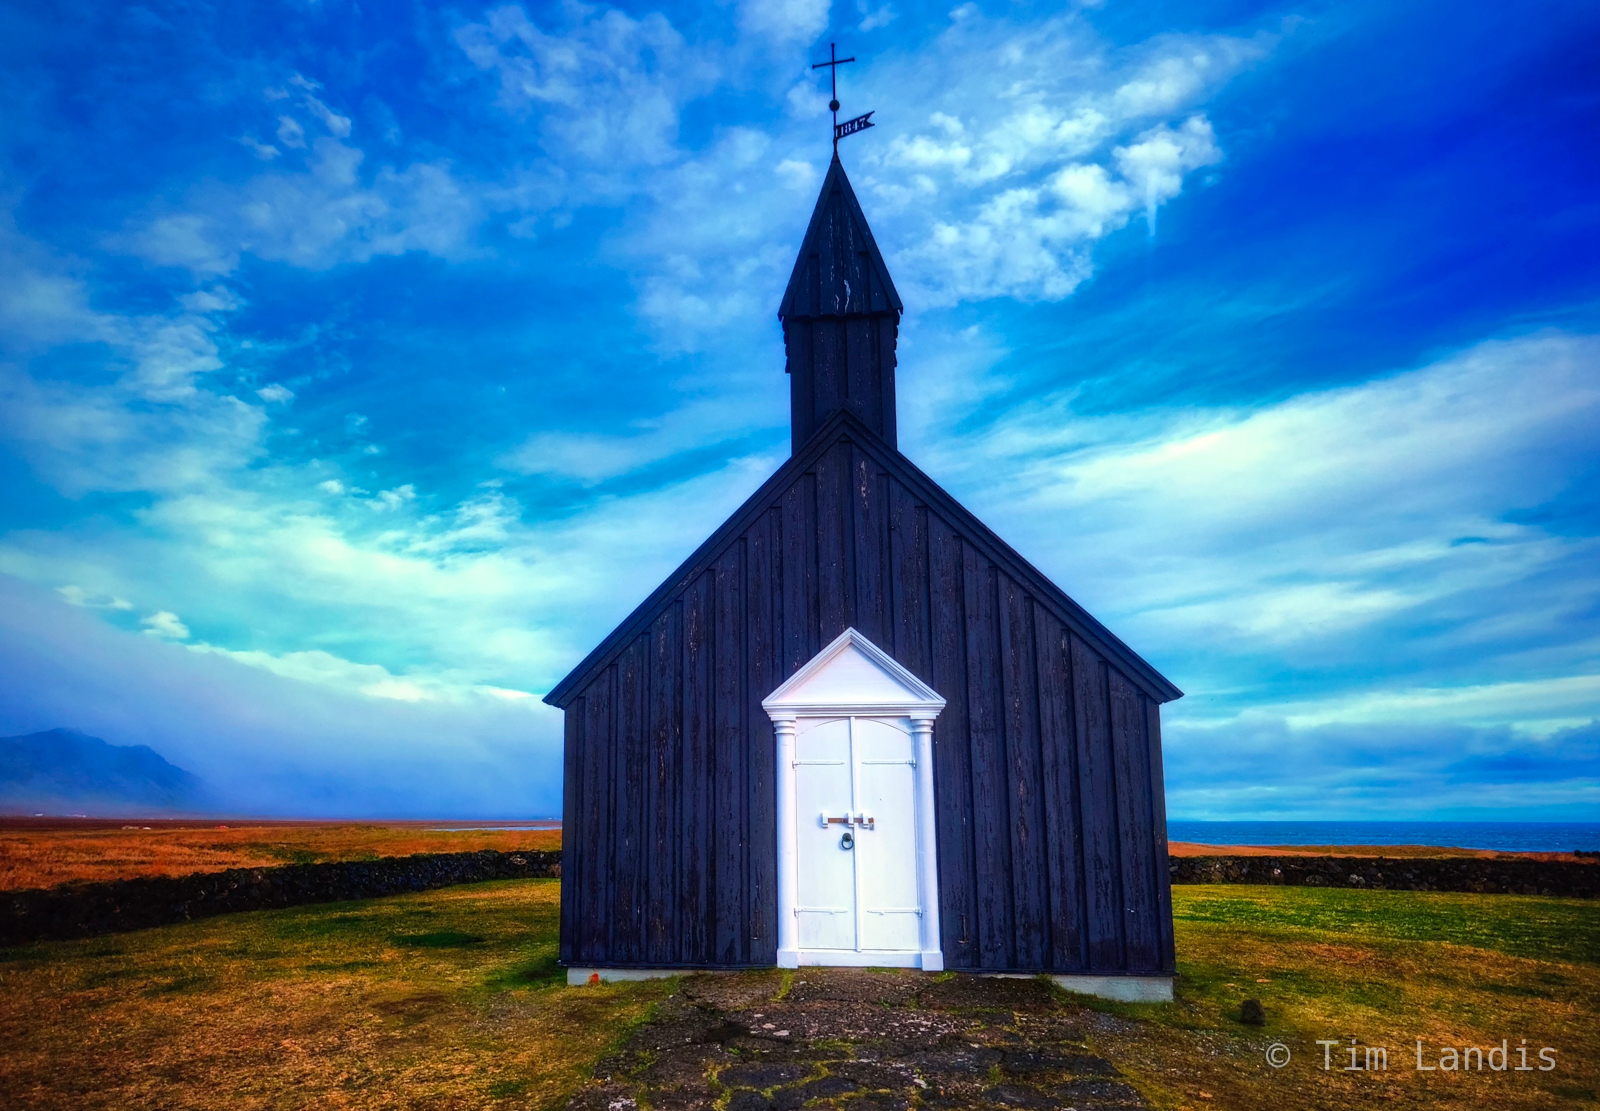 The Black Church with white door